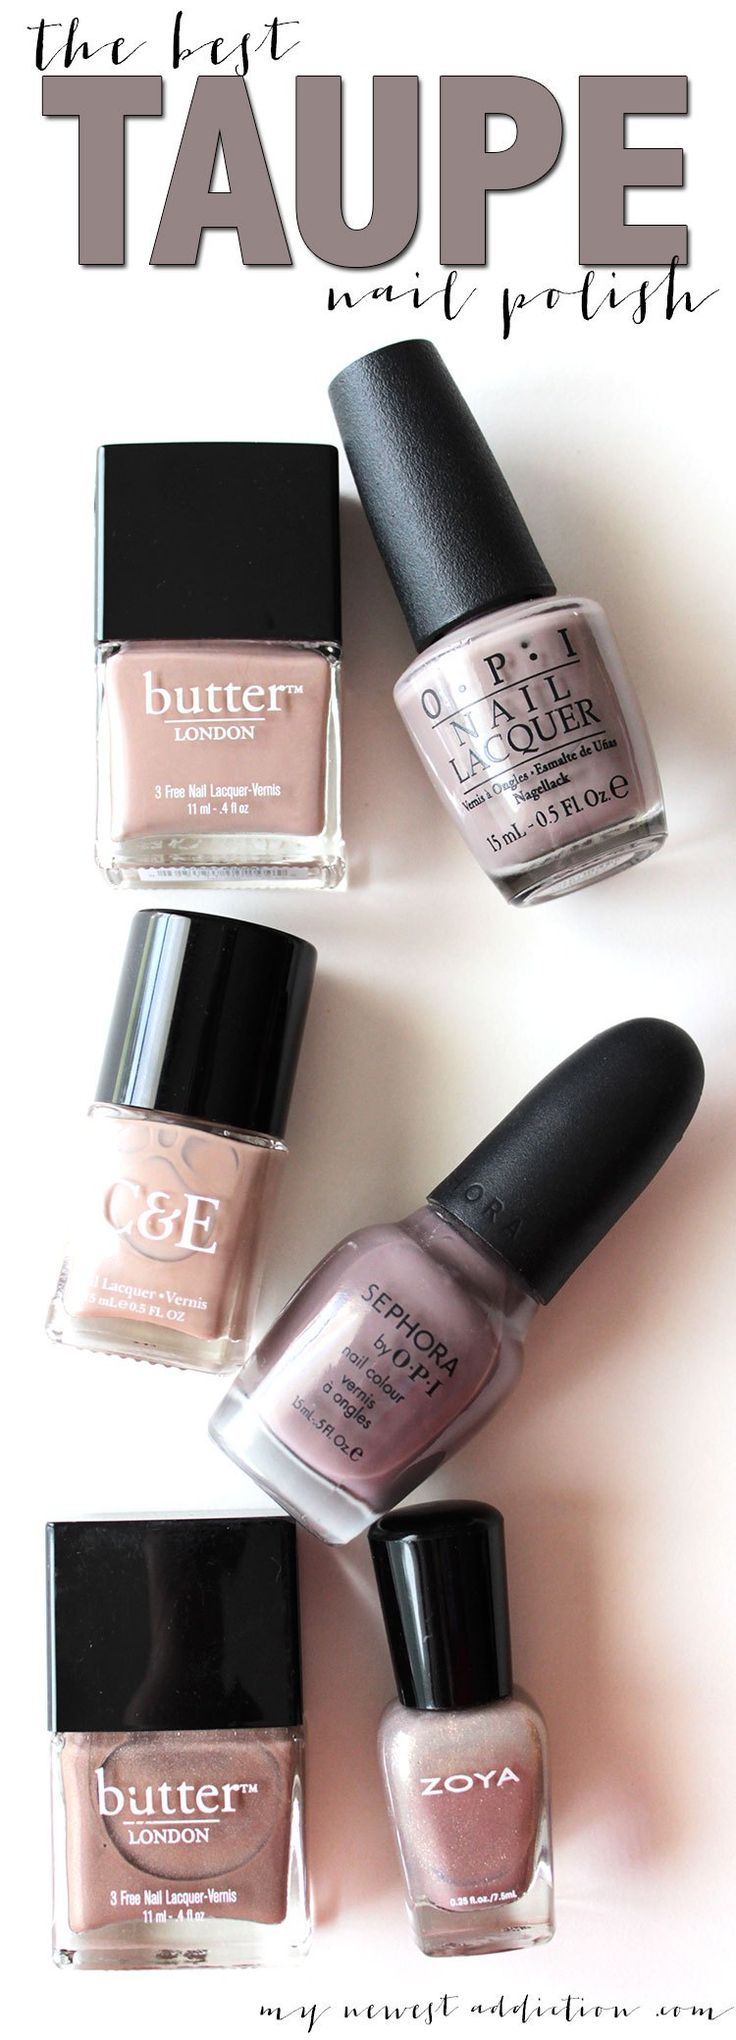 The Best Taupe Nail Polish - http://www.mynewestaddiction.com/2014/10/the-best-taupe-nail-polish.html